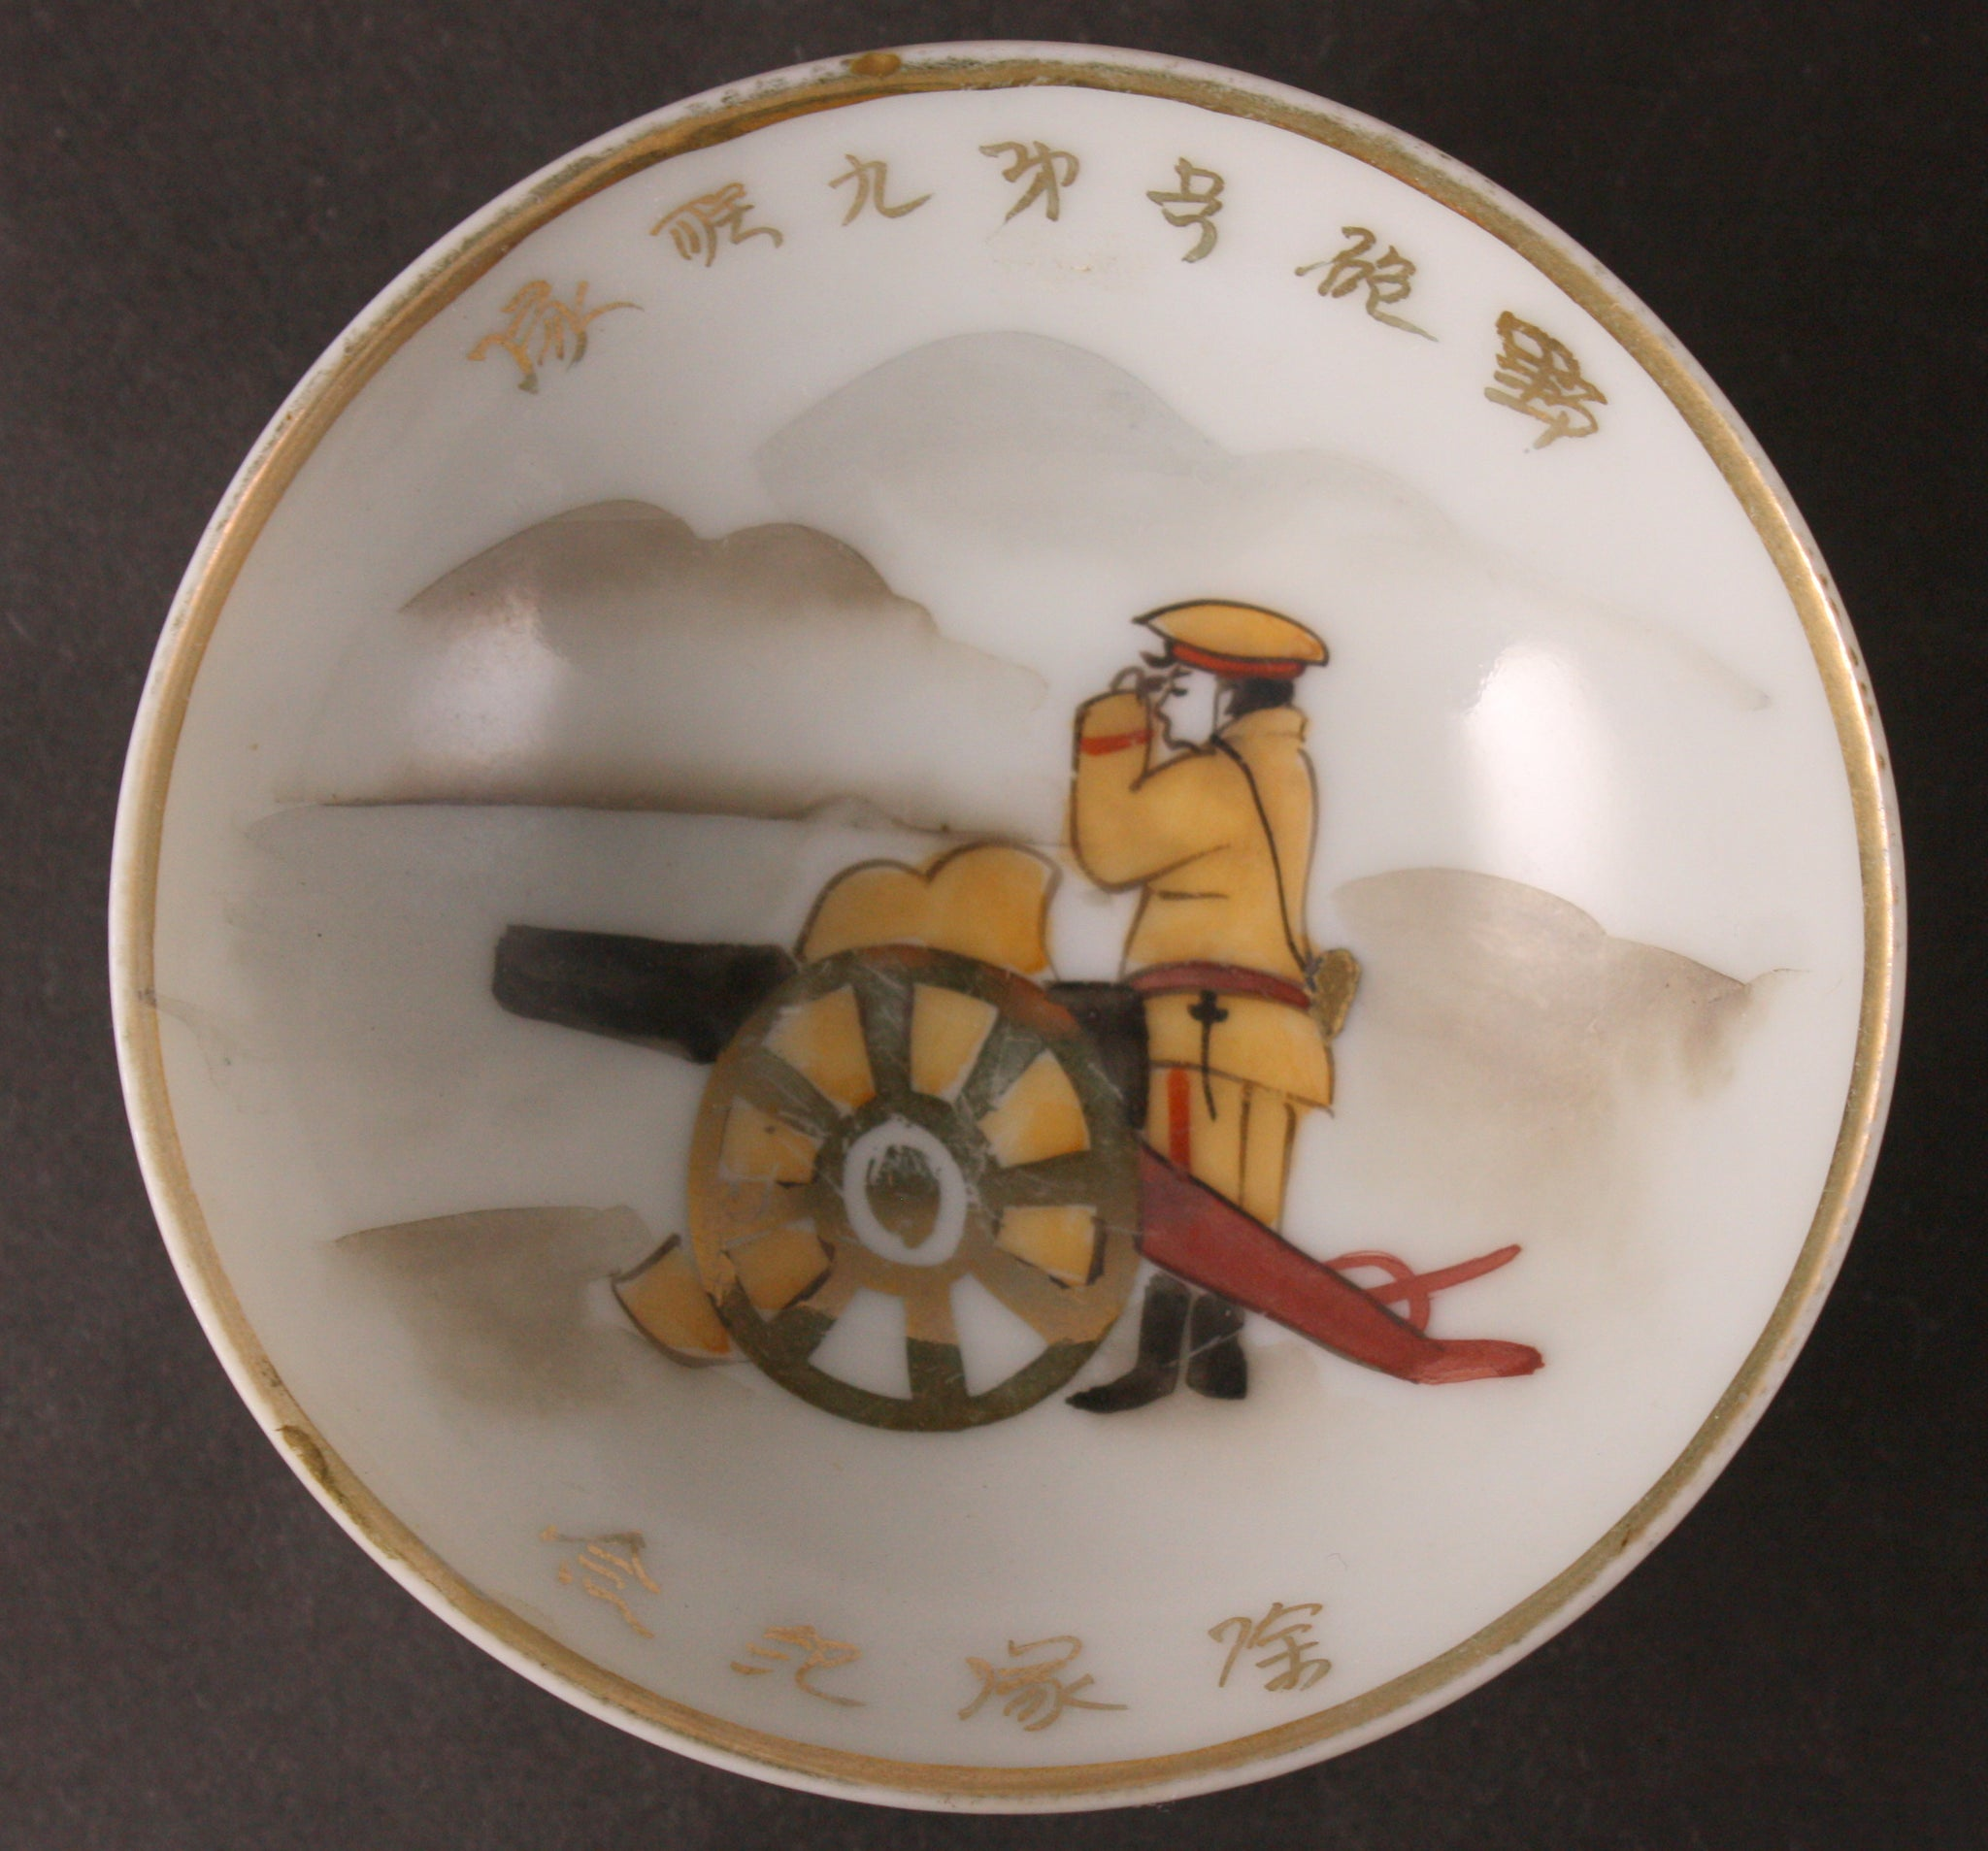 Very Rare Antique Japanese Military Artillery Soldier Army Sake Cup